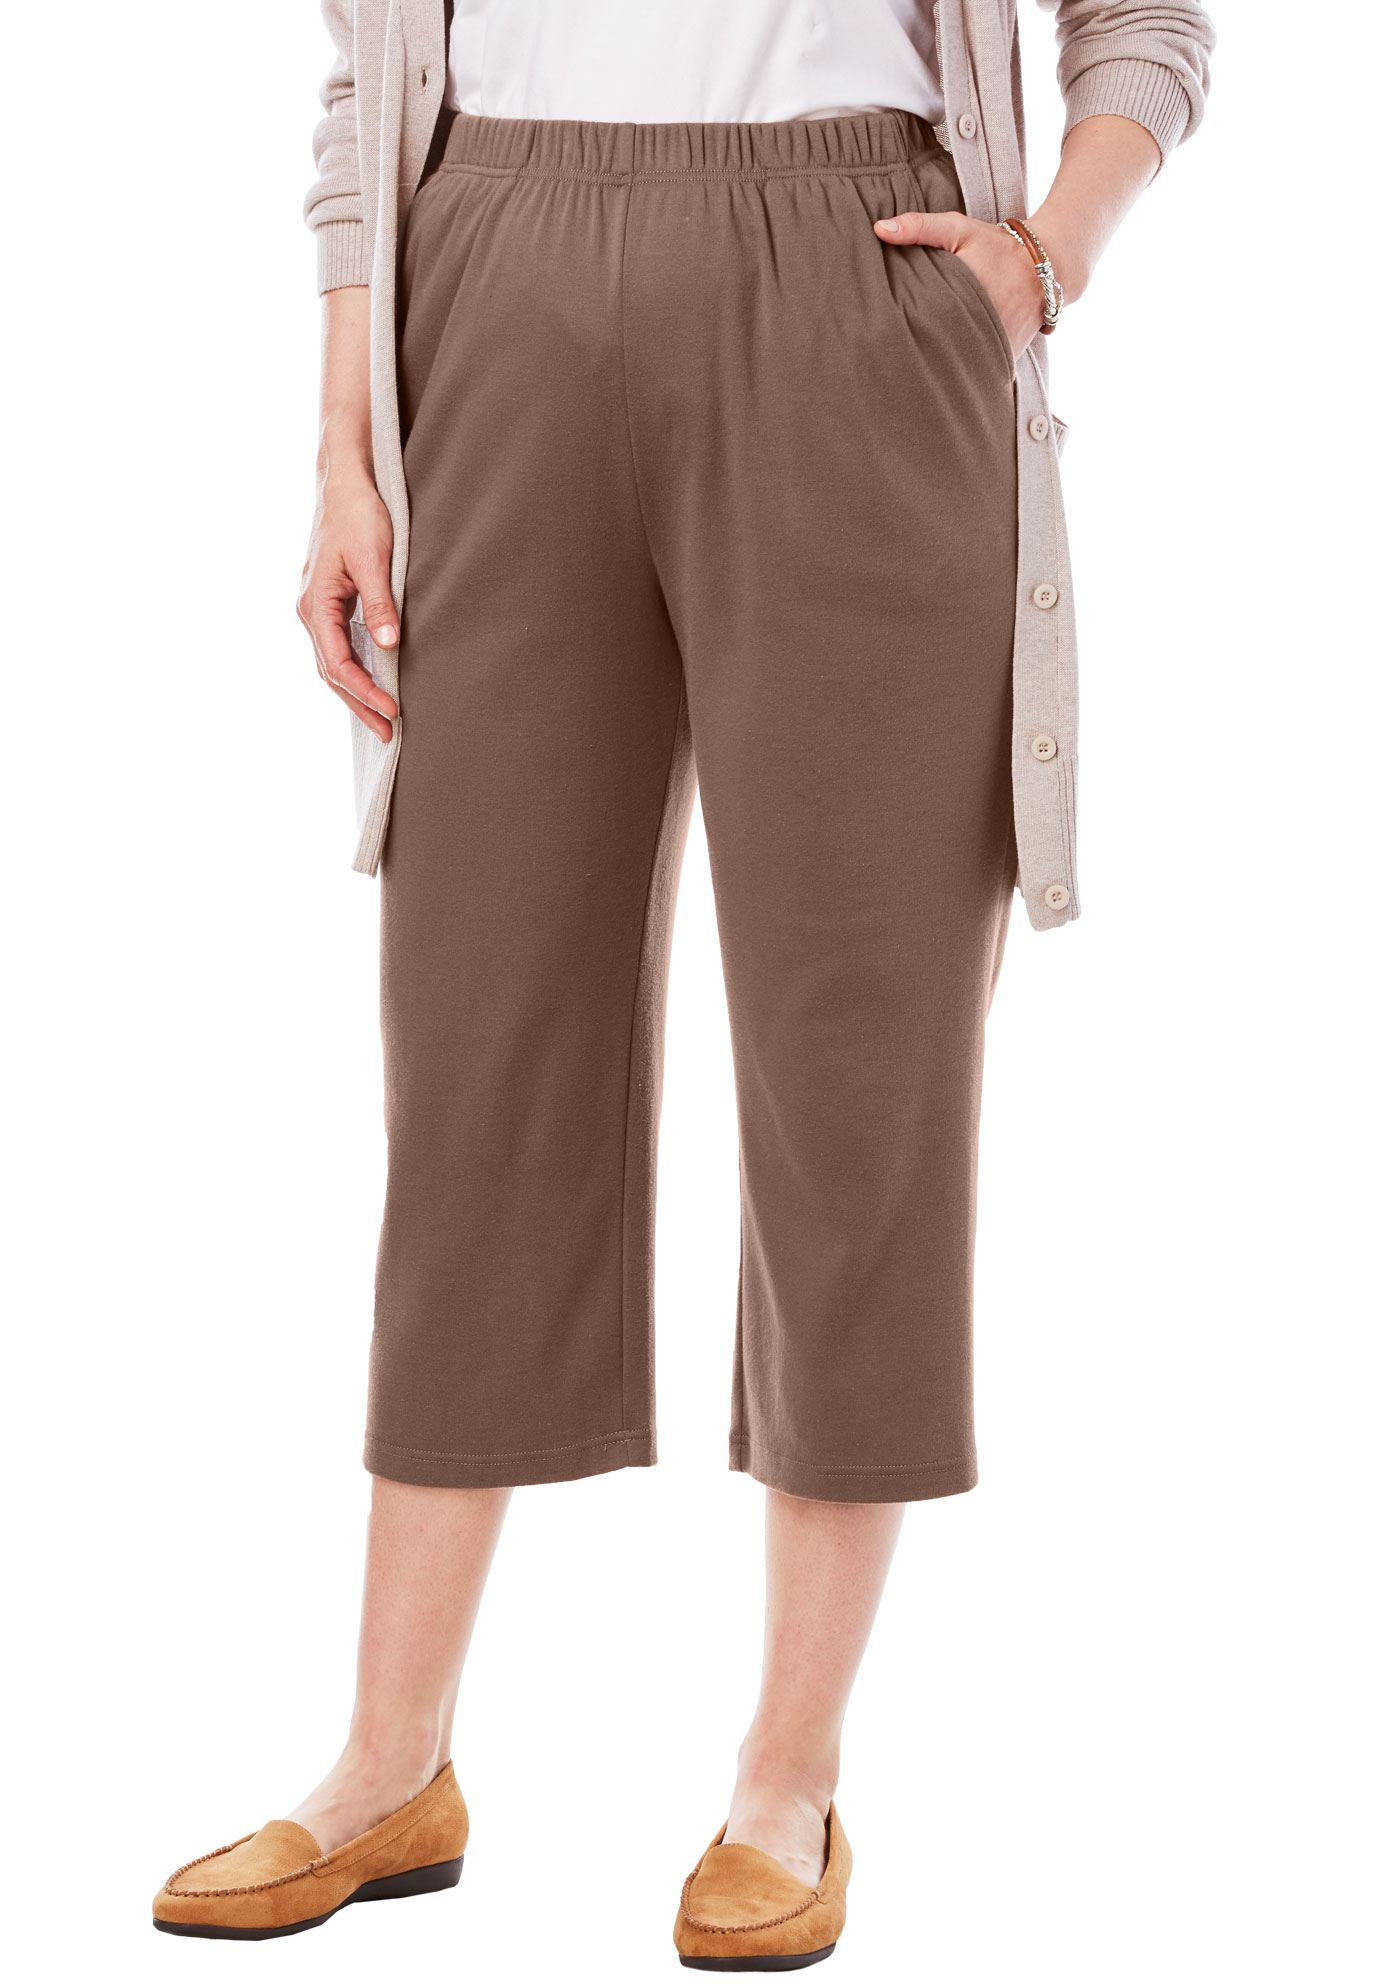 Woman Within Plus Size Petite 7-day Knit Capri